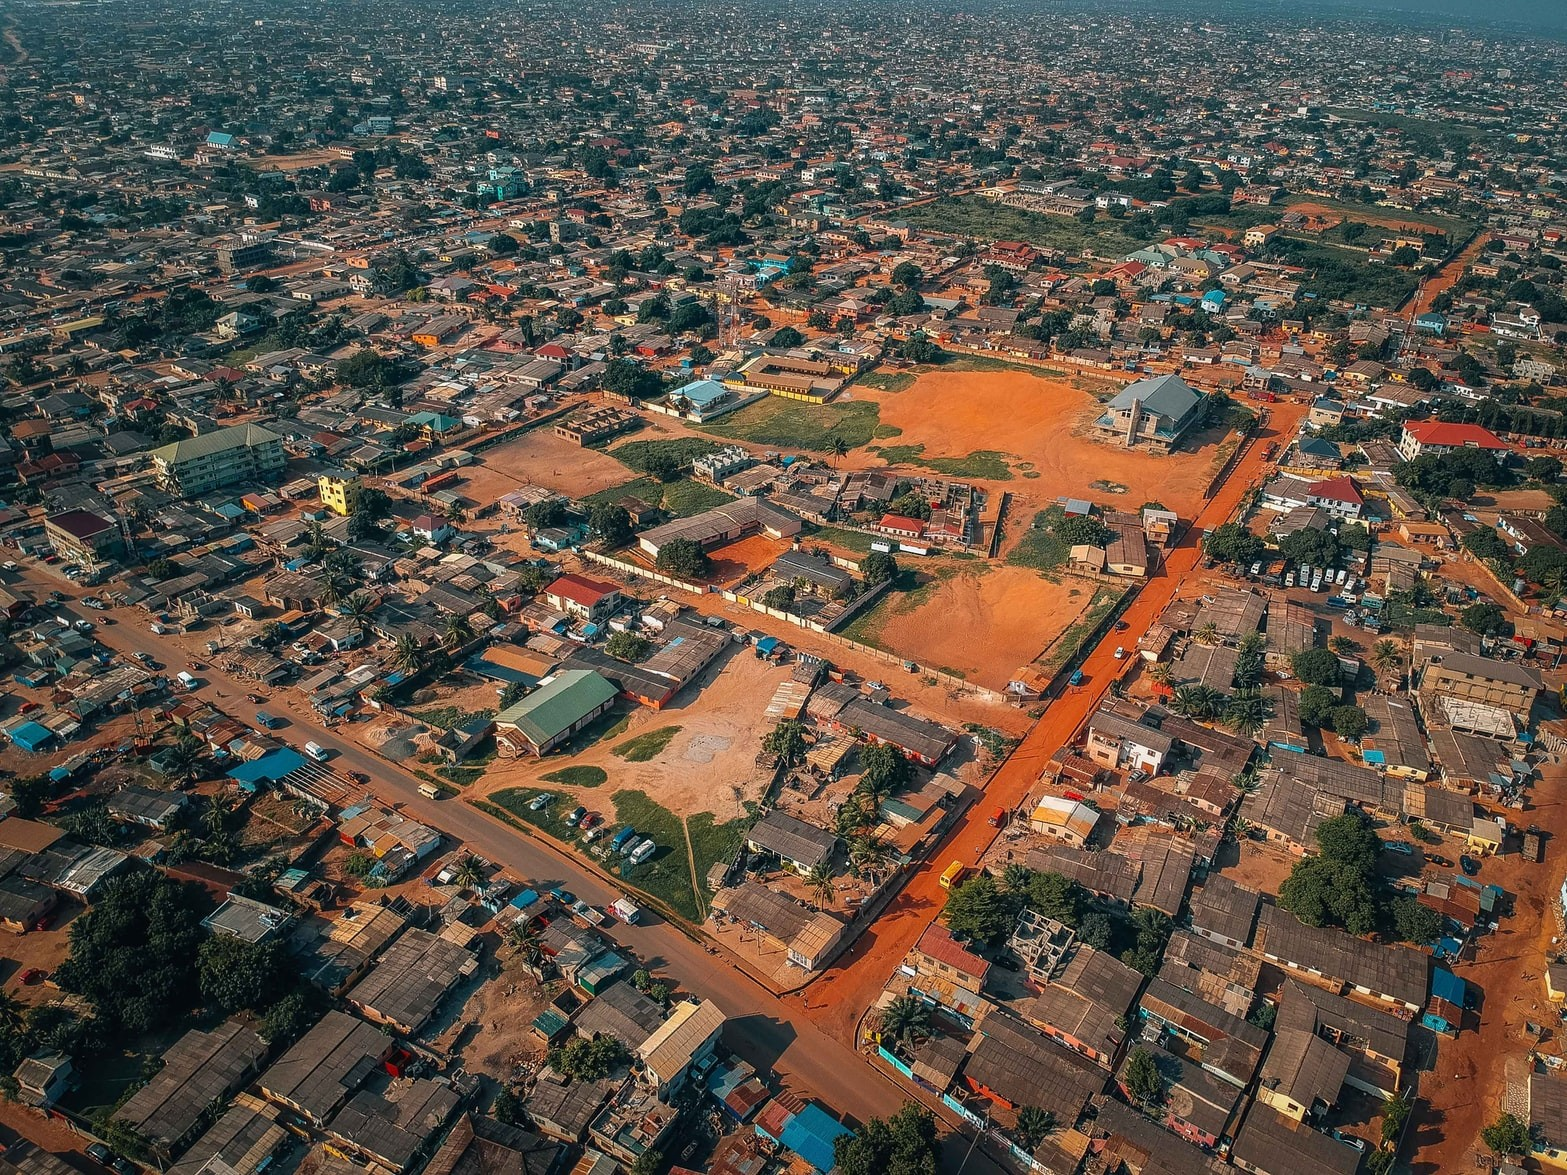 African Cities (C) Creative Commons